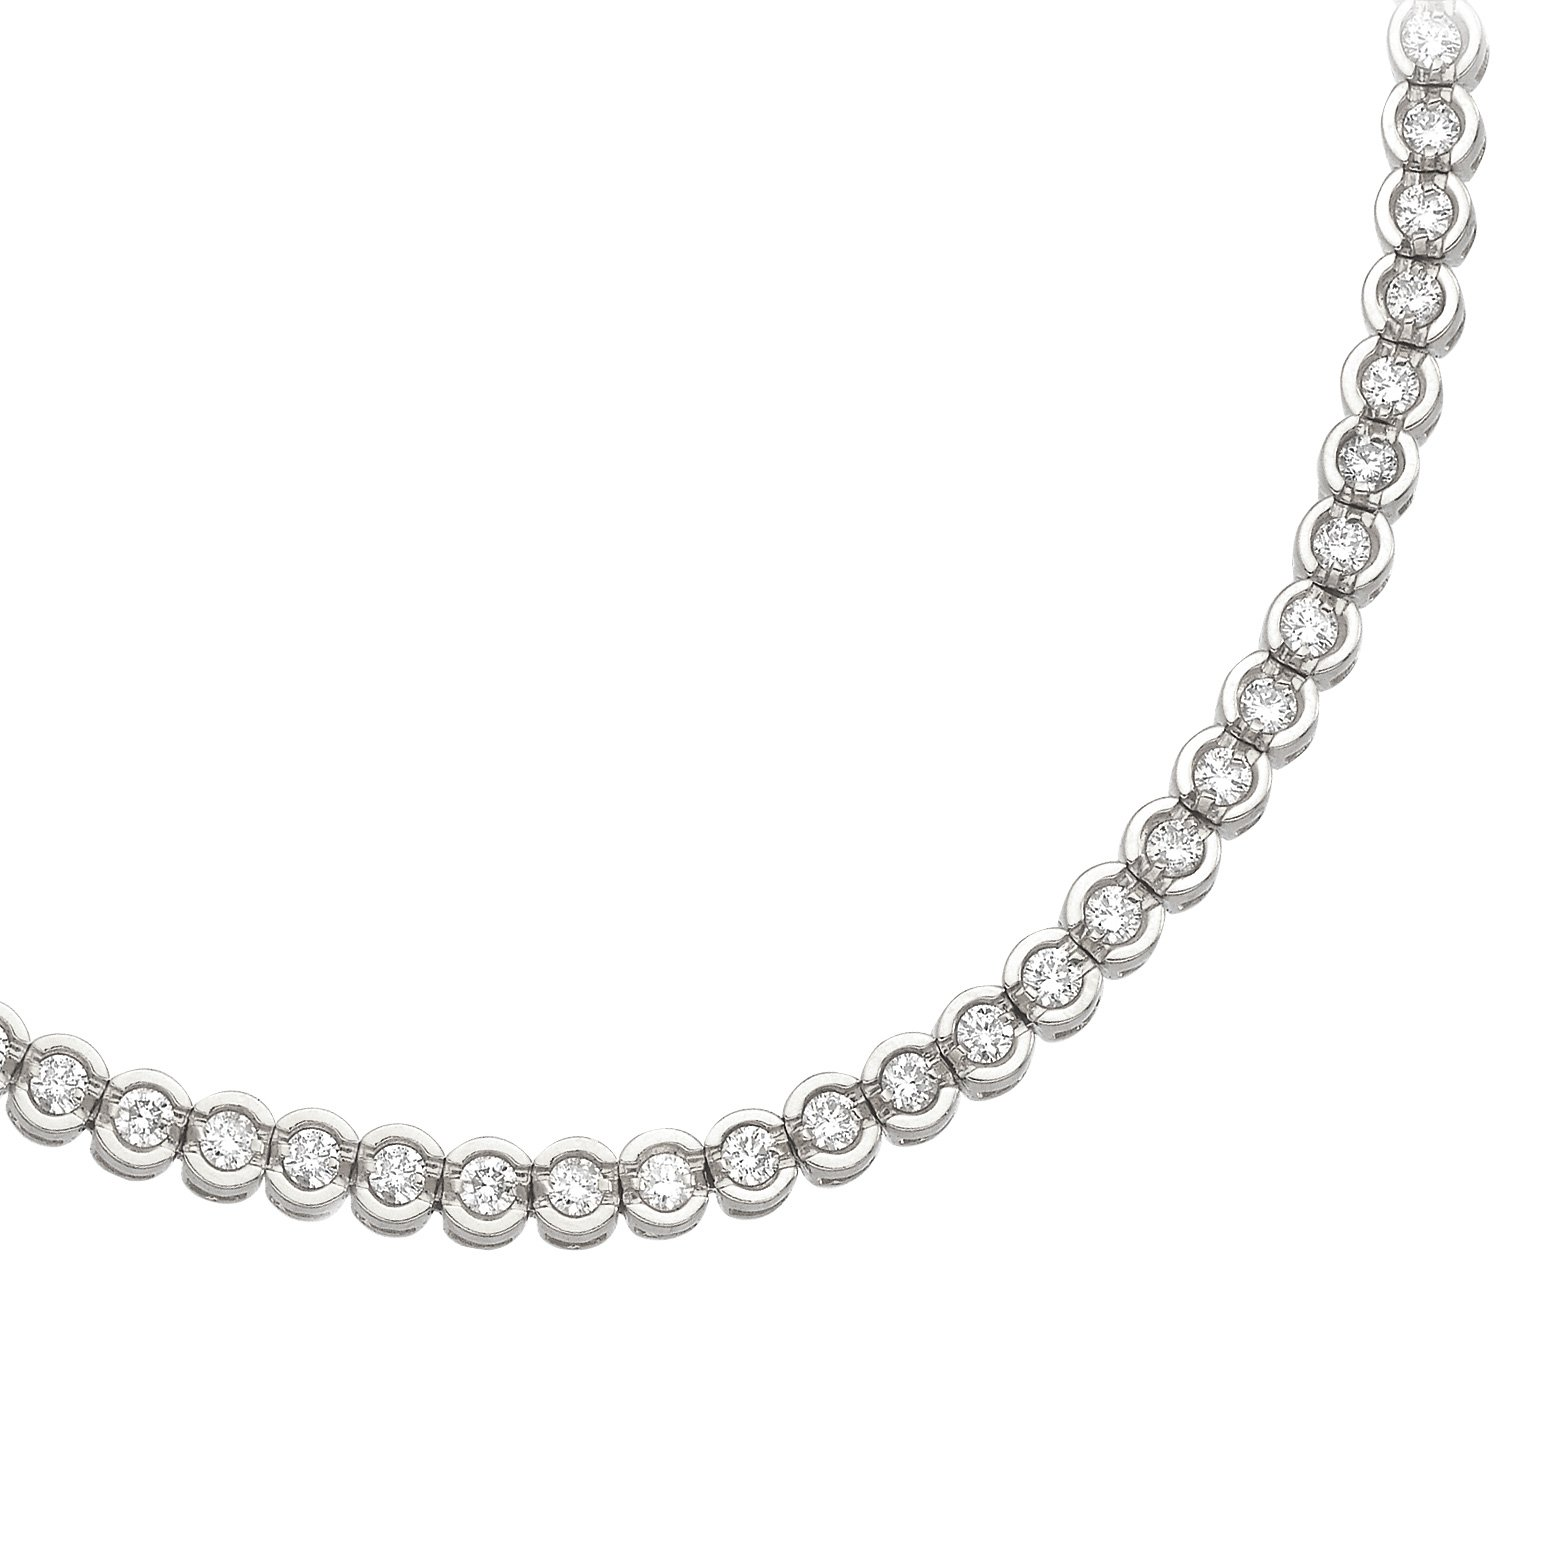 14K White Gold Round Diamond Circular Style Tennis Bracelet (8 inch) by Direct-Jewelry